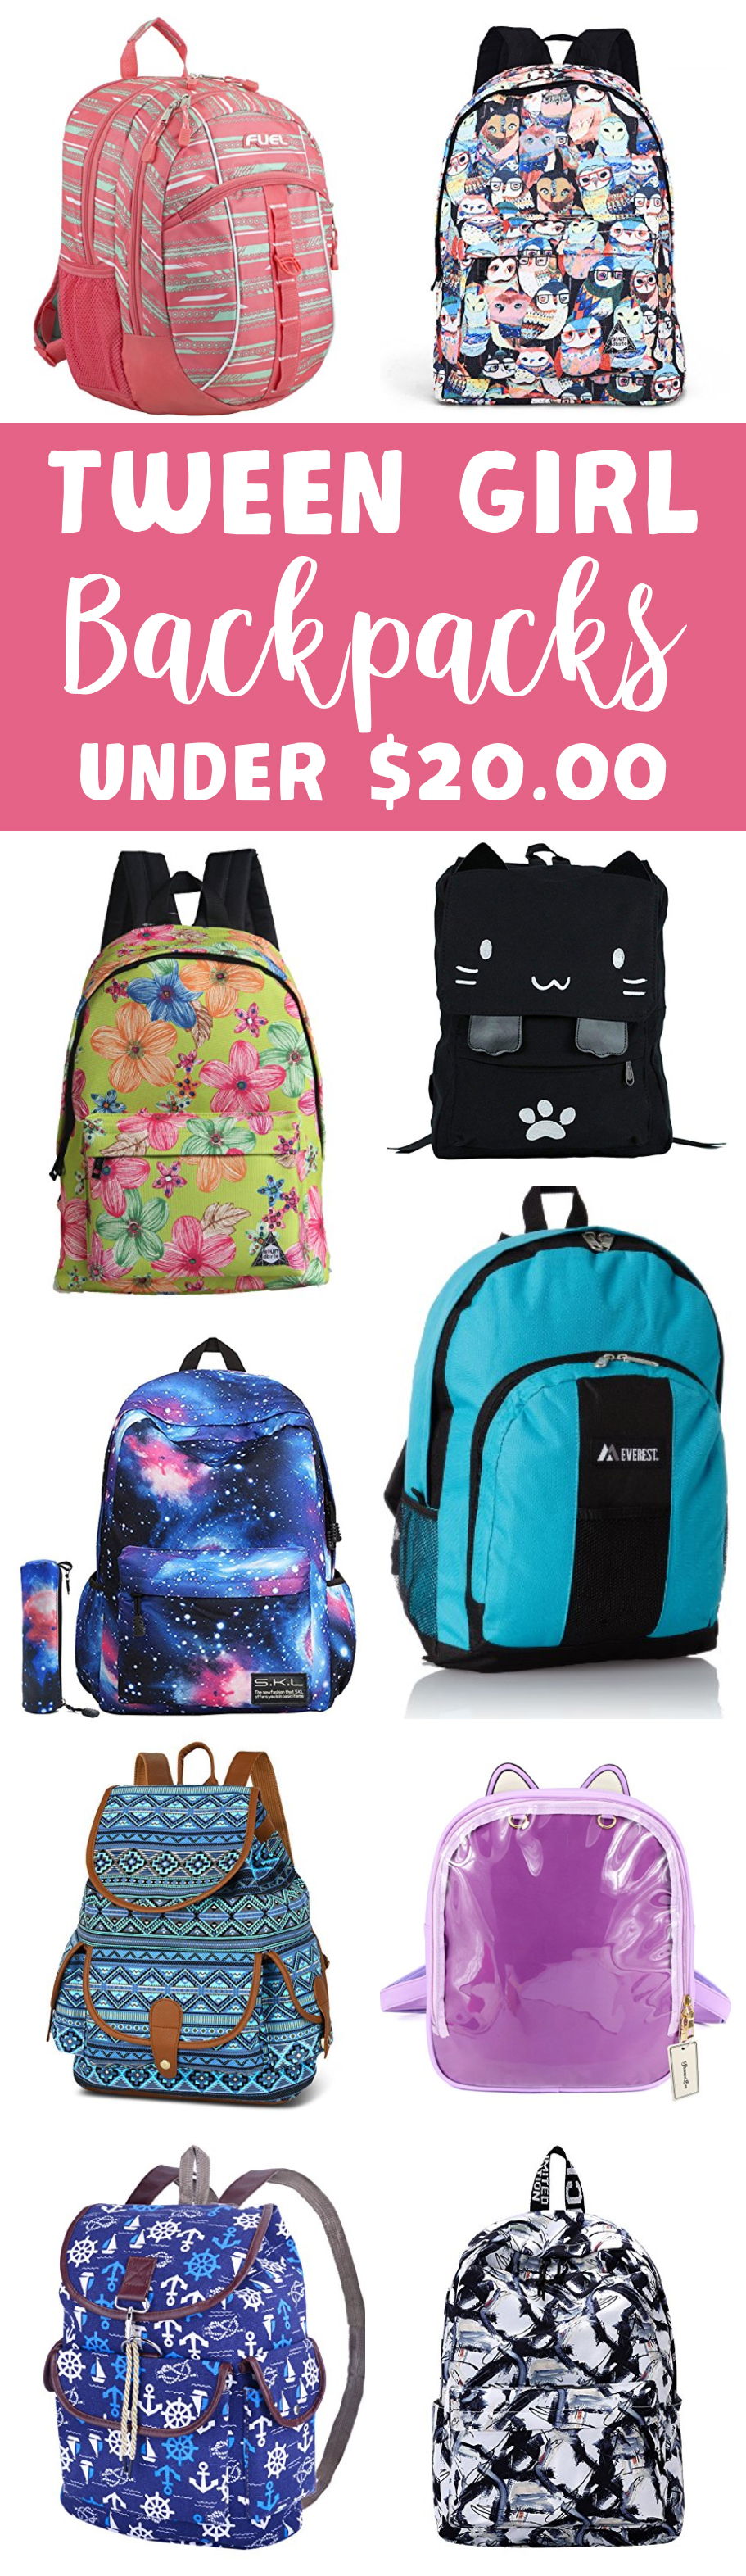 Tween Girl Backpacks Under $20